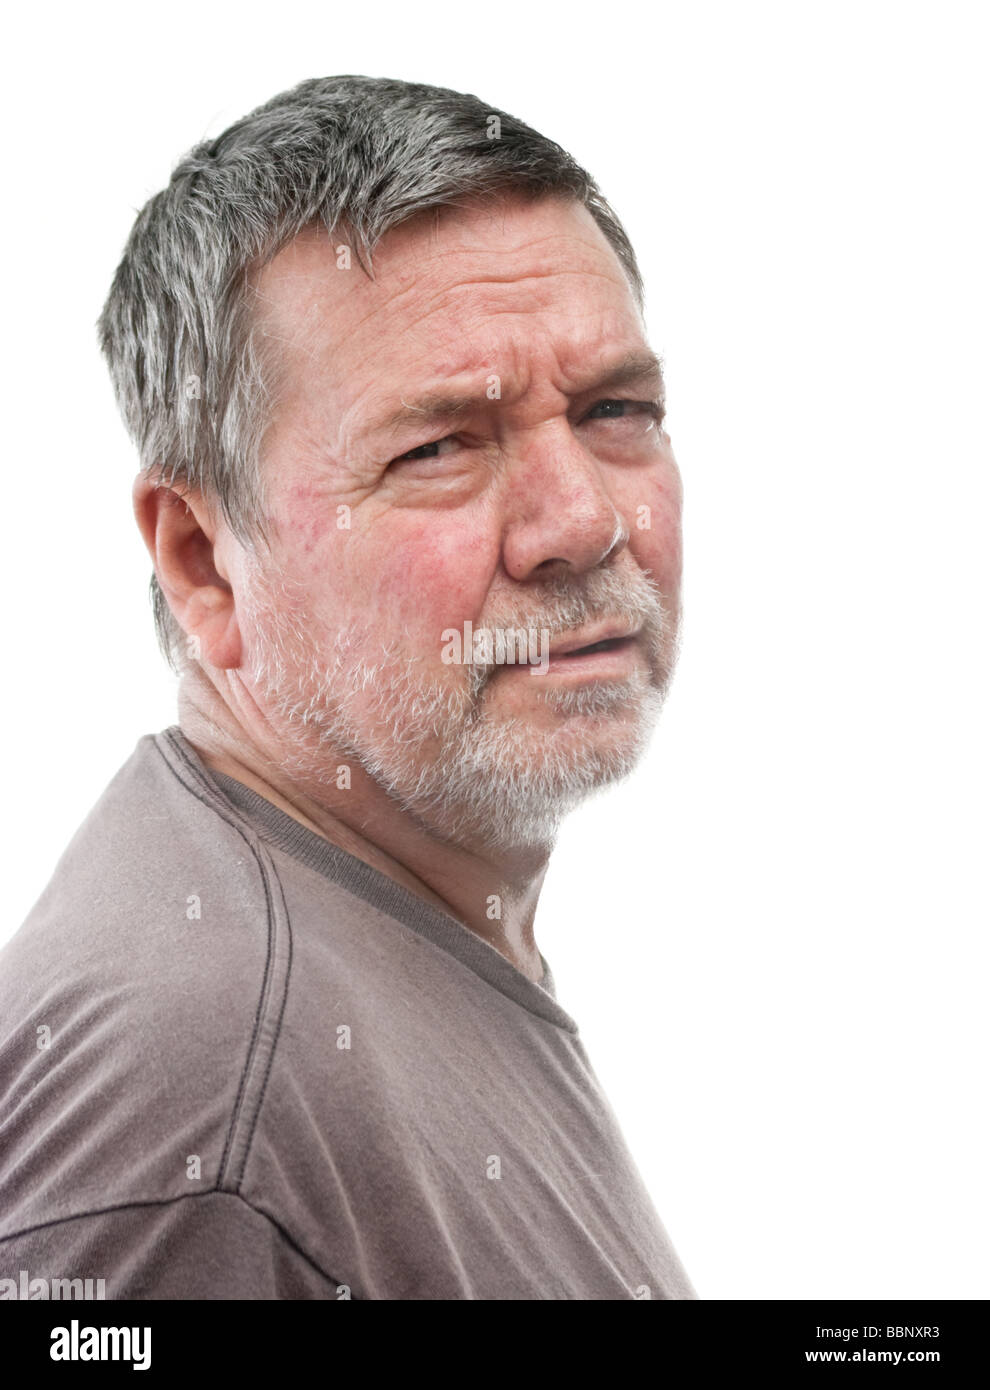 beard and homeless stock photos beard and homeless stock images